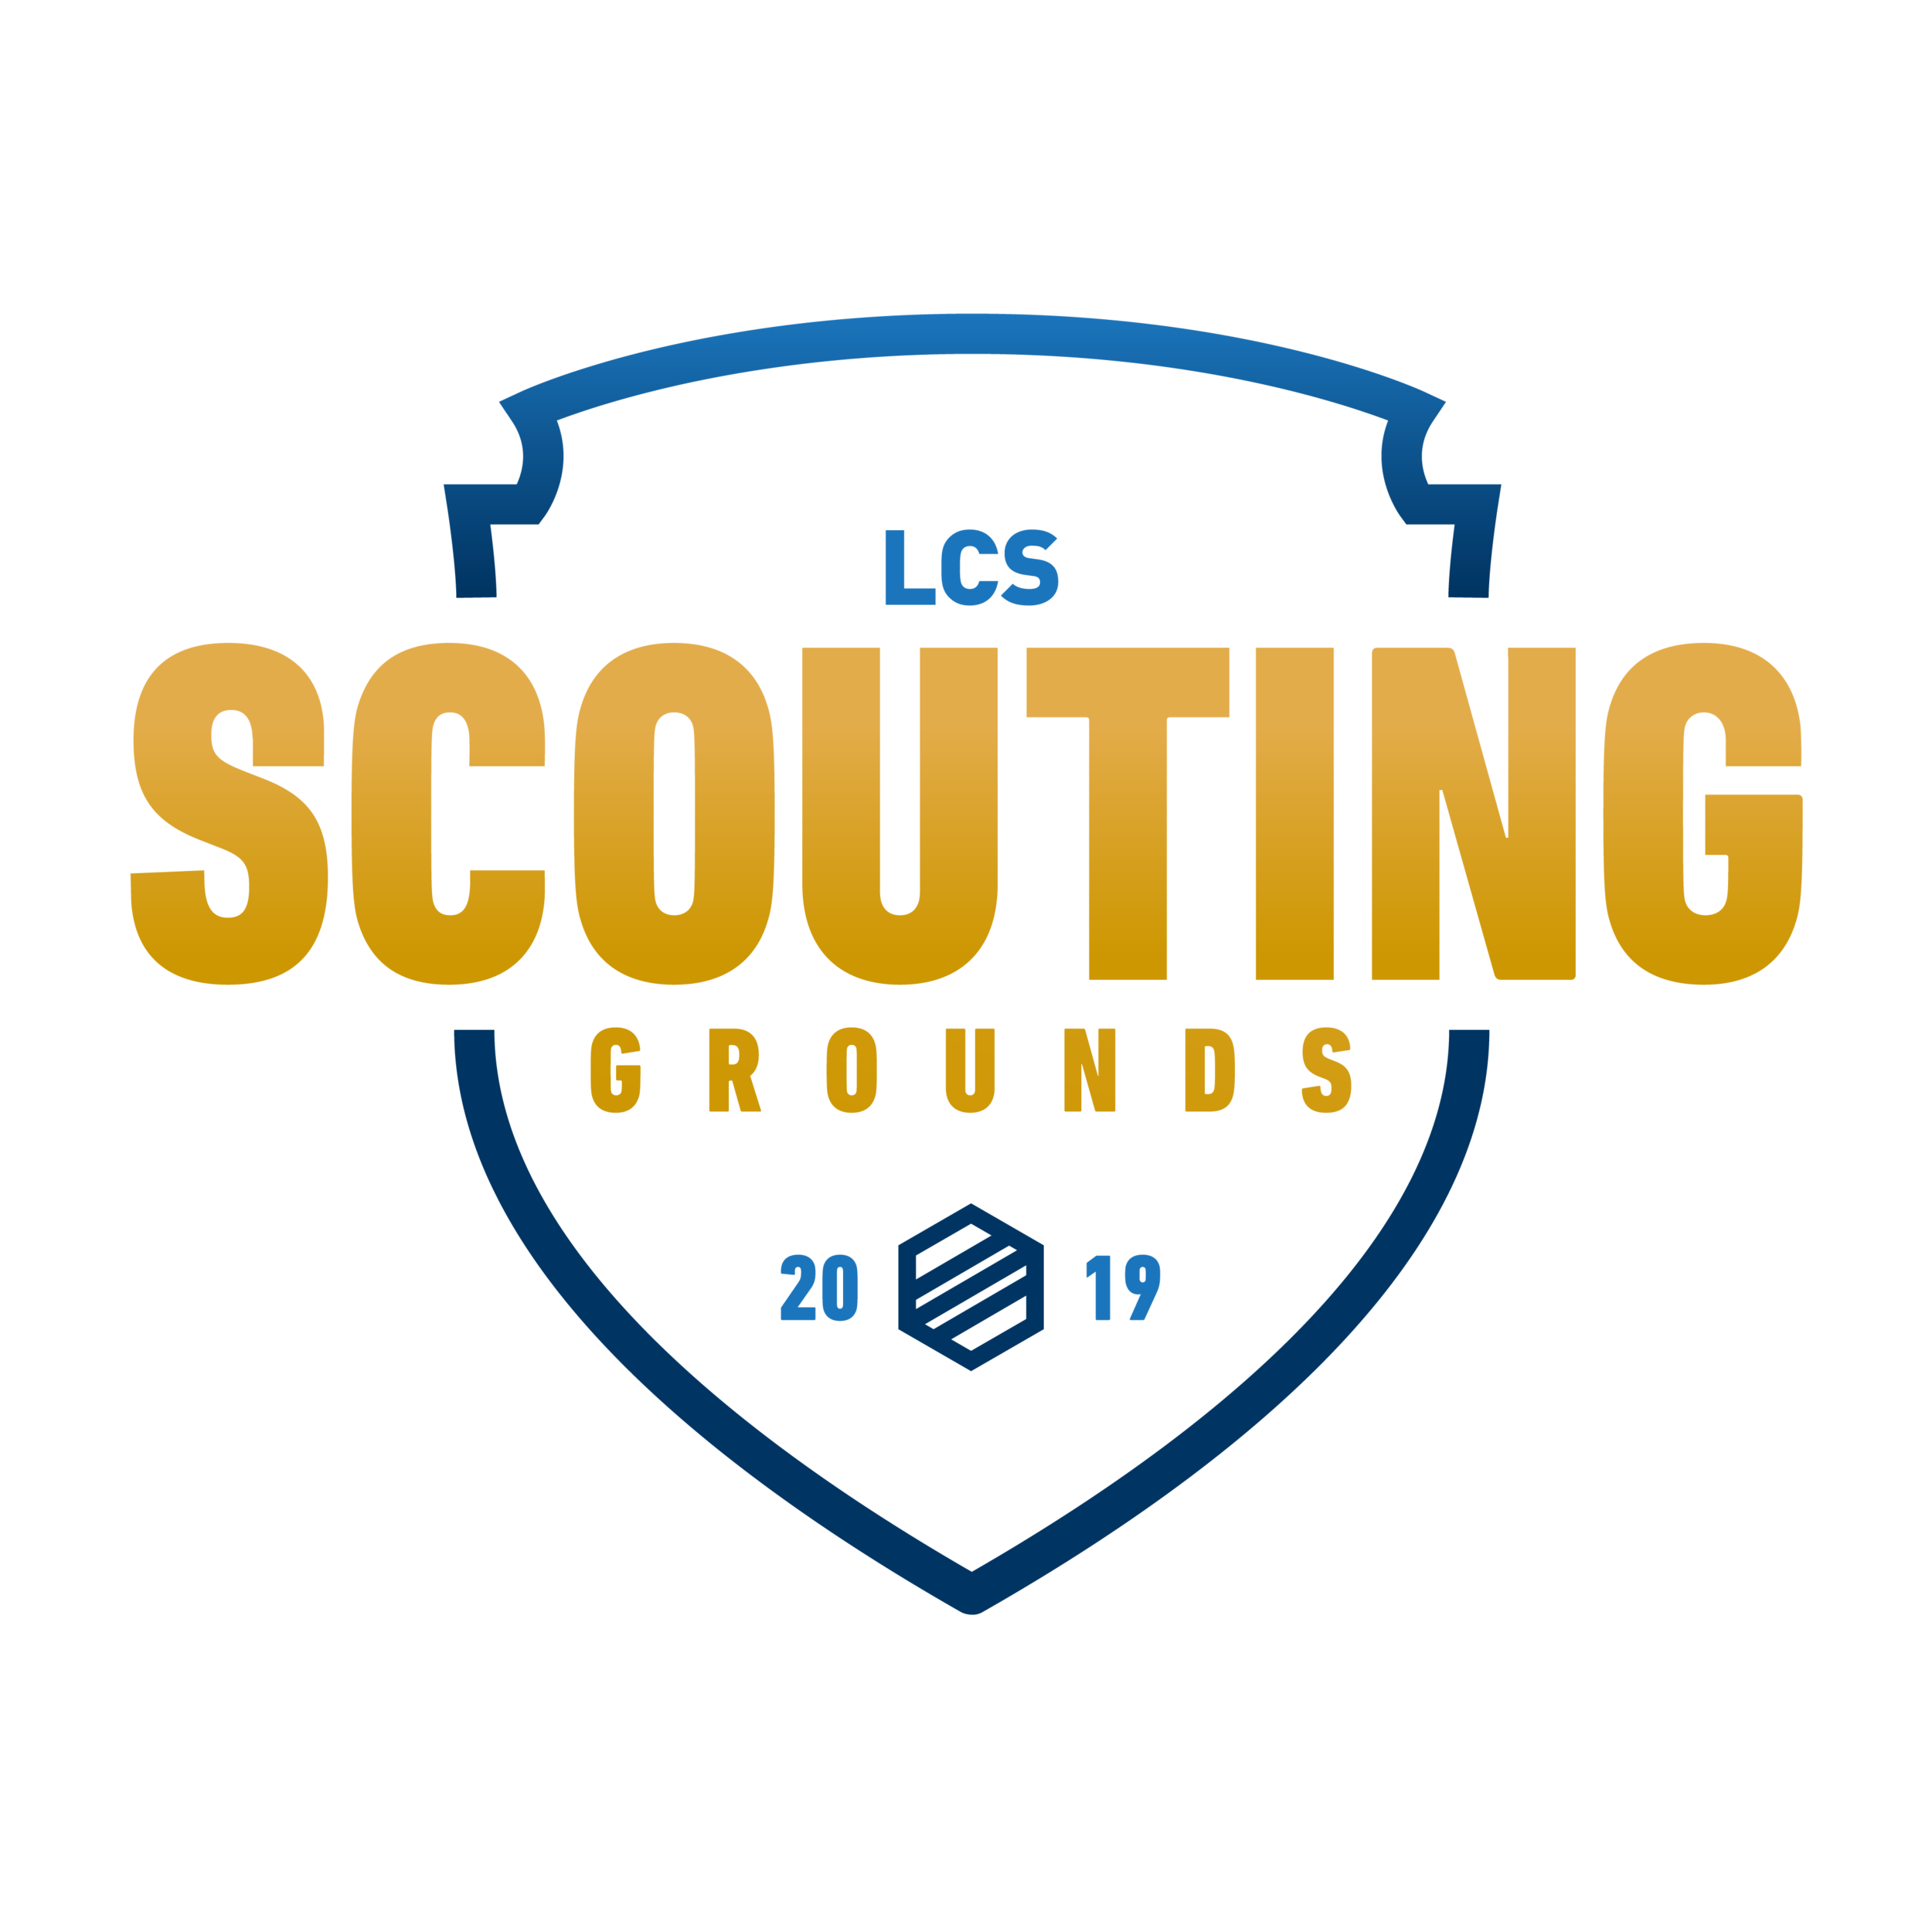 LCS_ScoutingGrounds_Color_Gradient.png